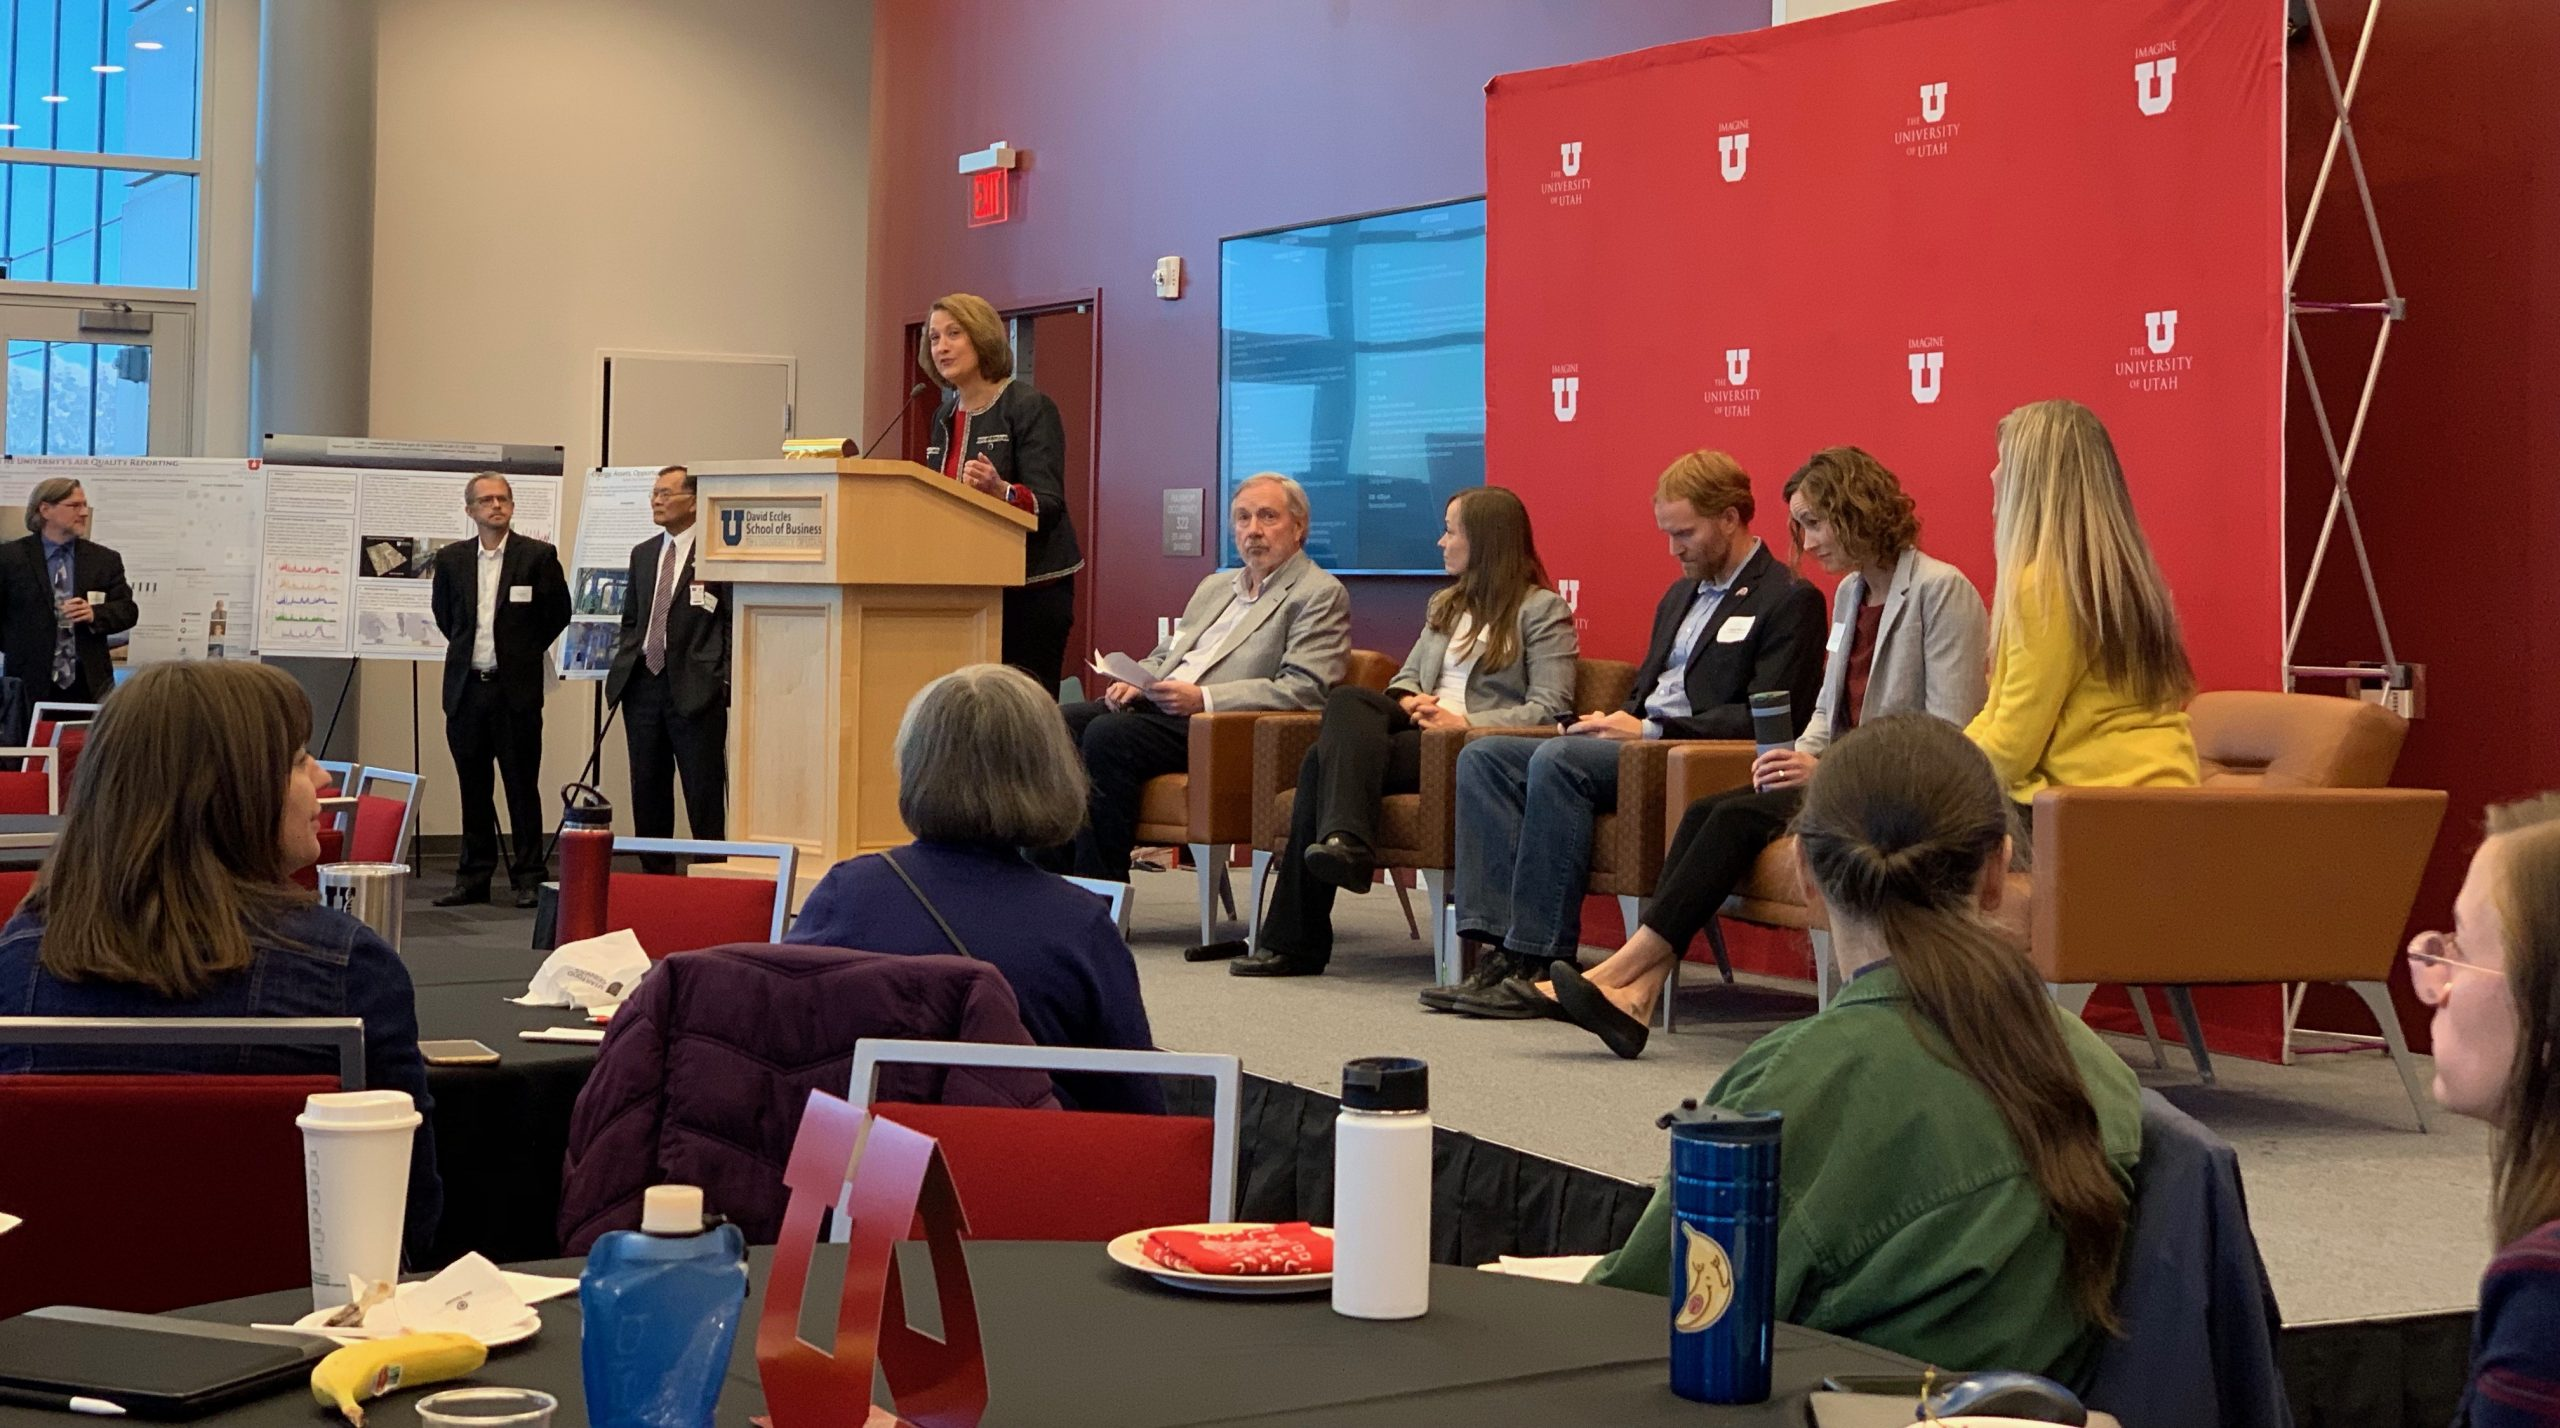 President Ruth Watkins stands at a podium next to five seated panelists. Attendees are seated and standing around the room.